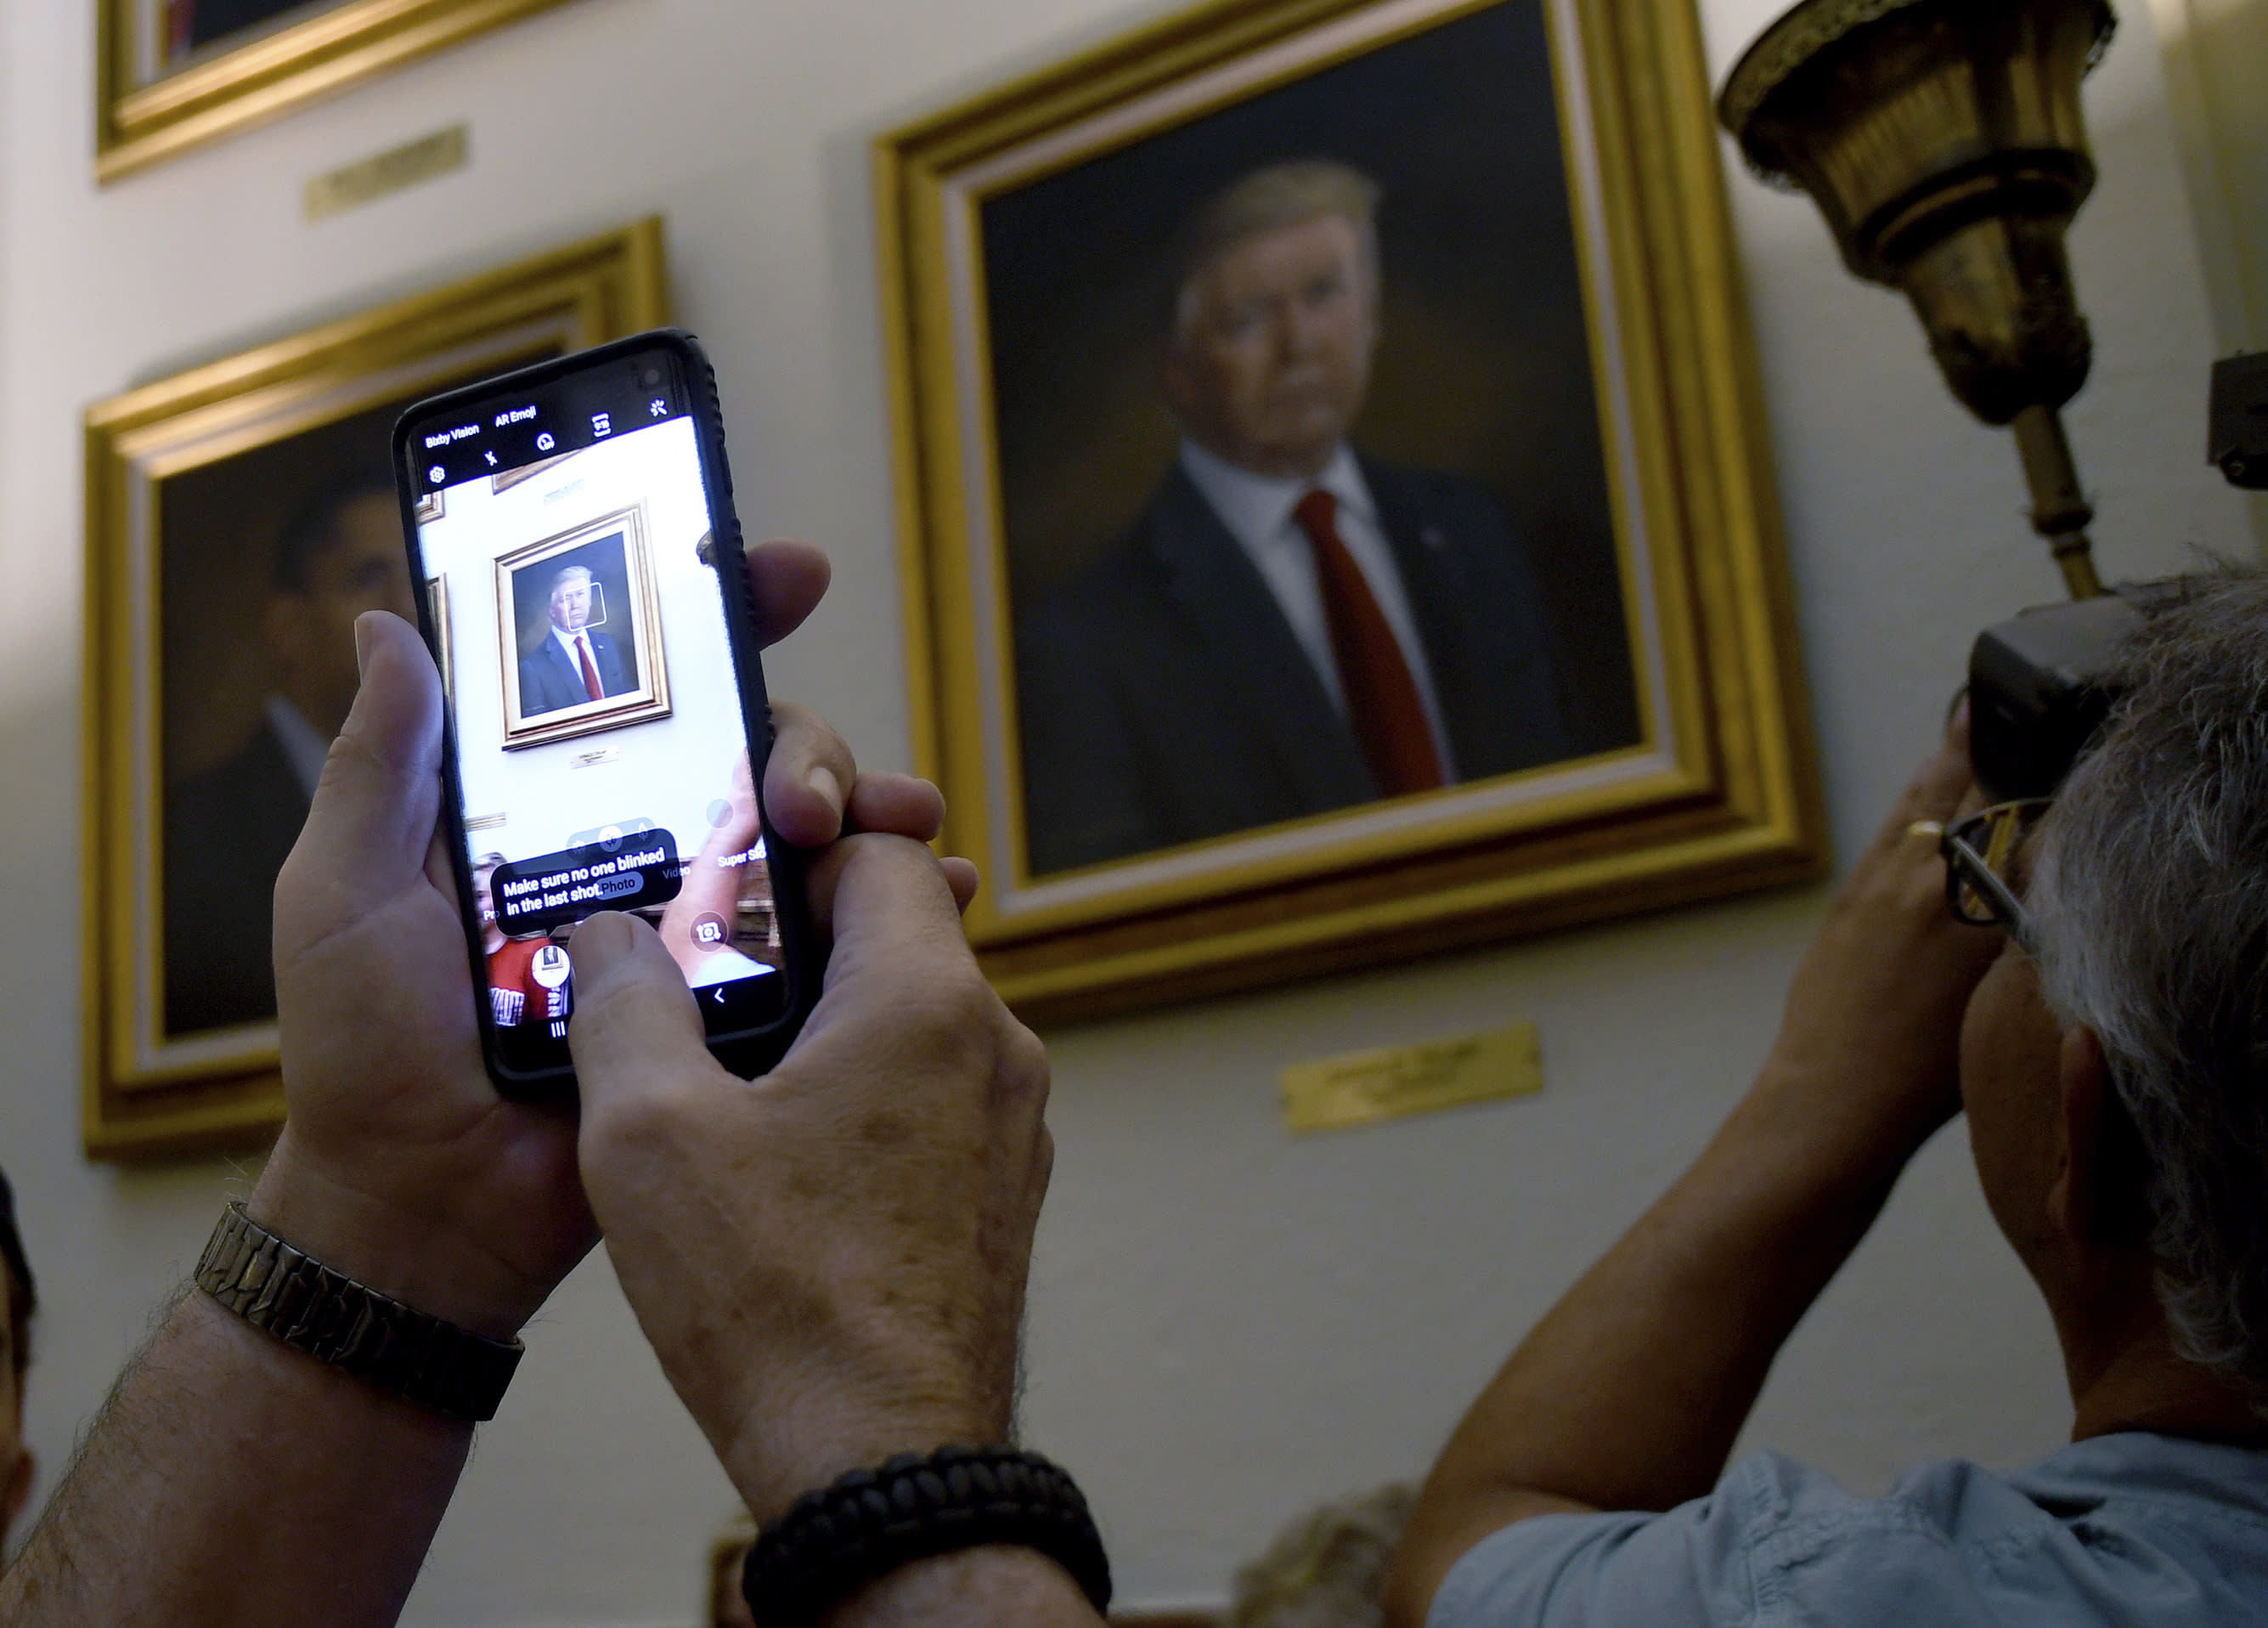 People take photos of President Donald Trump's portrait hanging in the Colorado Capitol after an unveiling ceremony Thursday, Aug. 1, 2019, in Denver. Colorado Republicans raised more than $10,000 through a GoFundMe account to commission the portrait, which was painted by Sarah Boardman, an artist who also produced the Capitol's portrait of President Barack Obama. (AP Photo/Thomas Peipert)